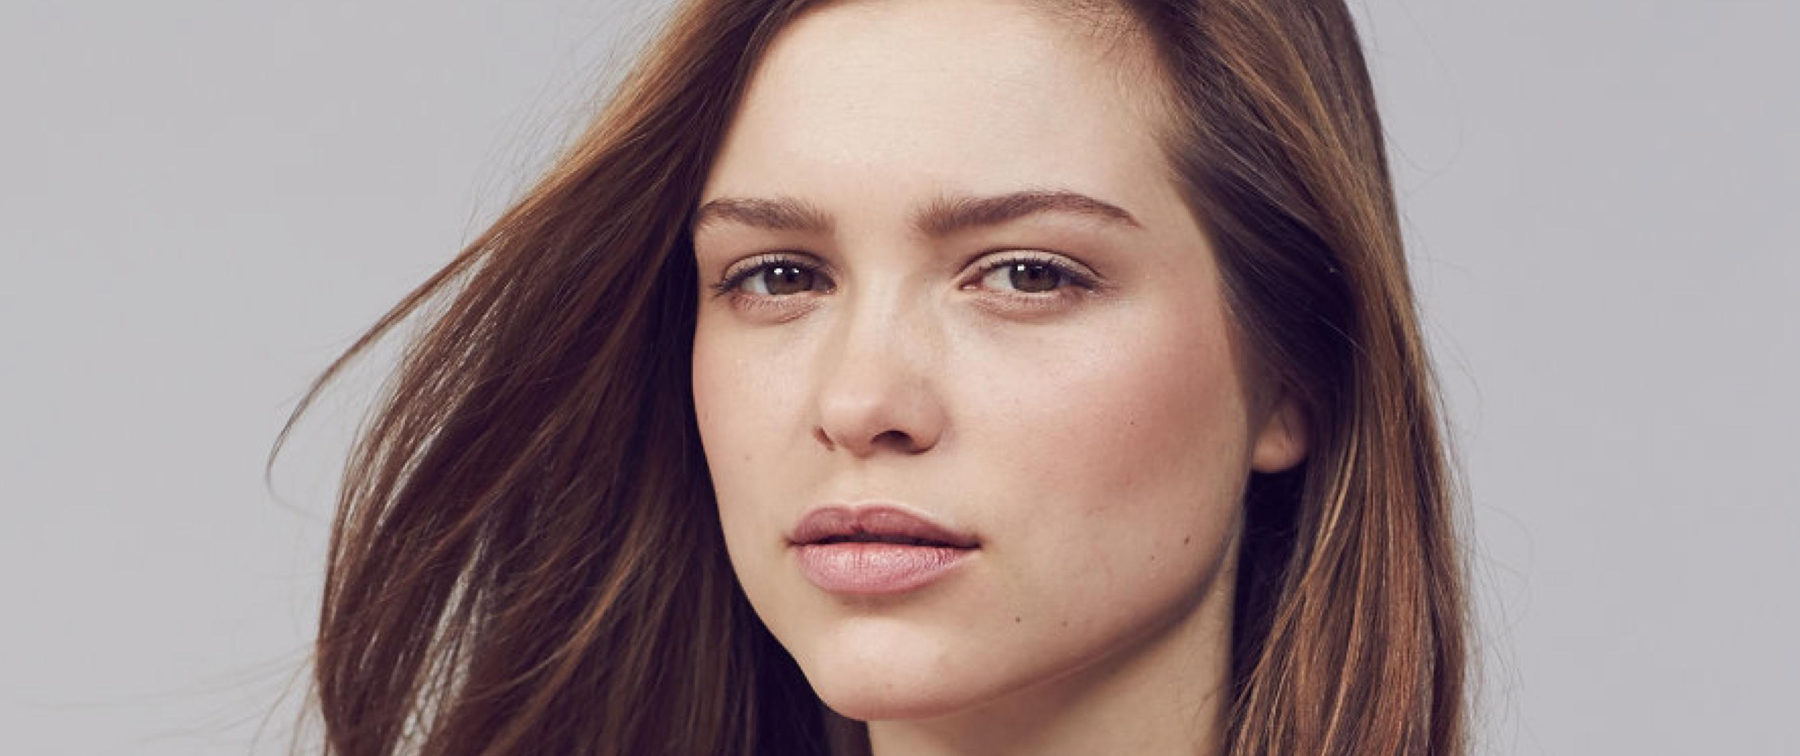 Images Sophie Cookson nude photos 2019